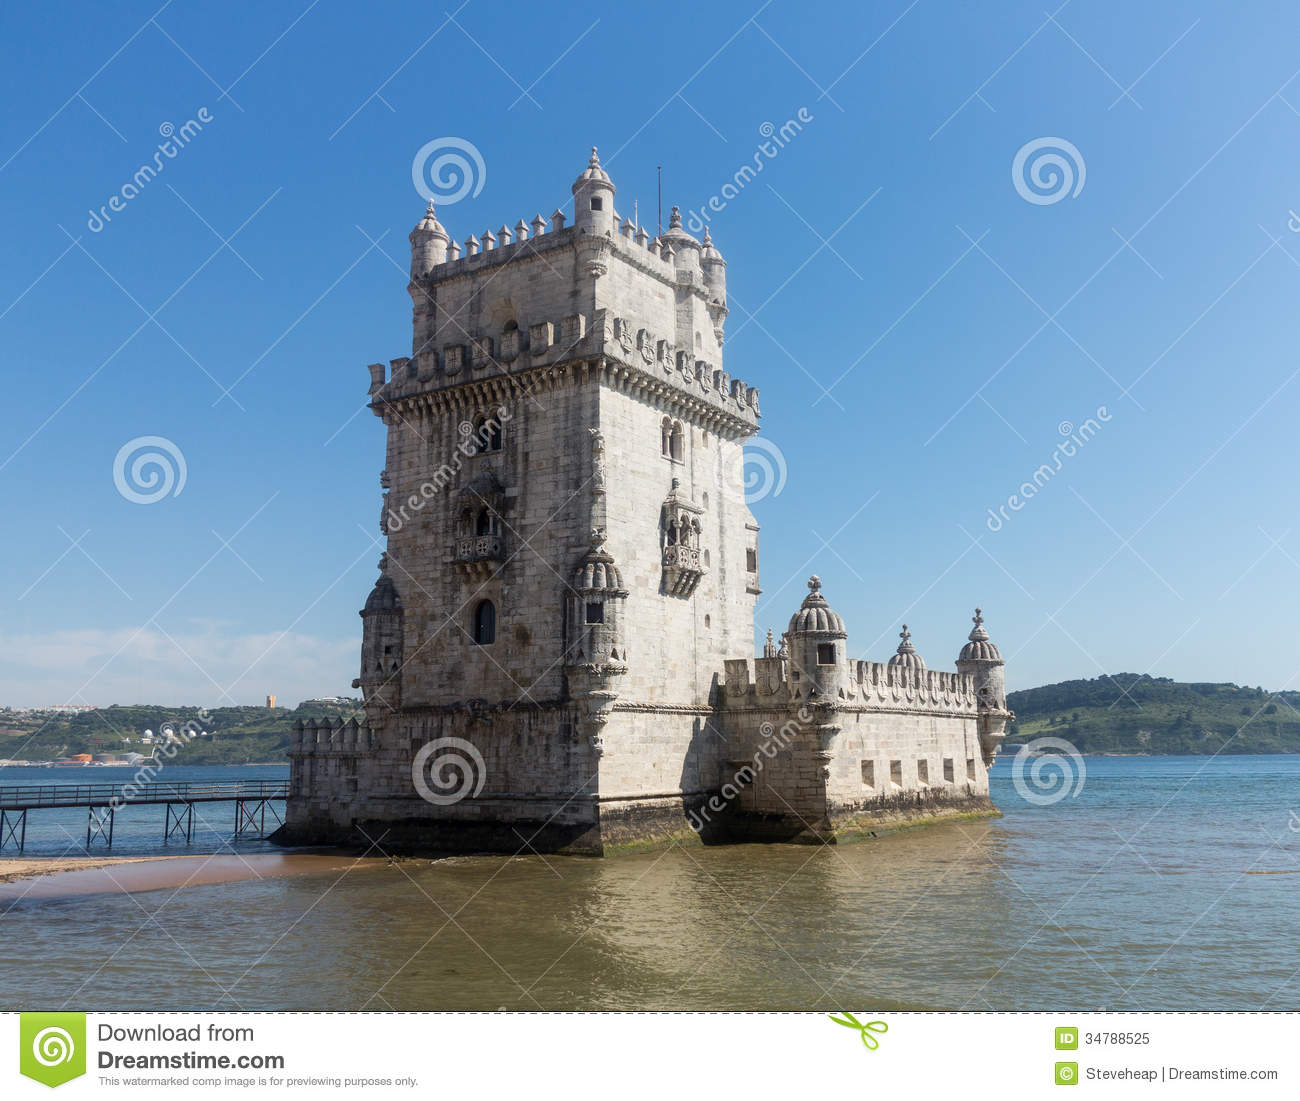 Belem Tower On River Tagus Near Lisbon Royalty Free Stock Photo.